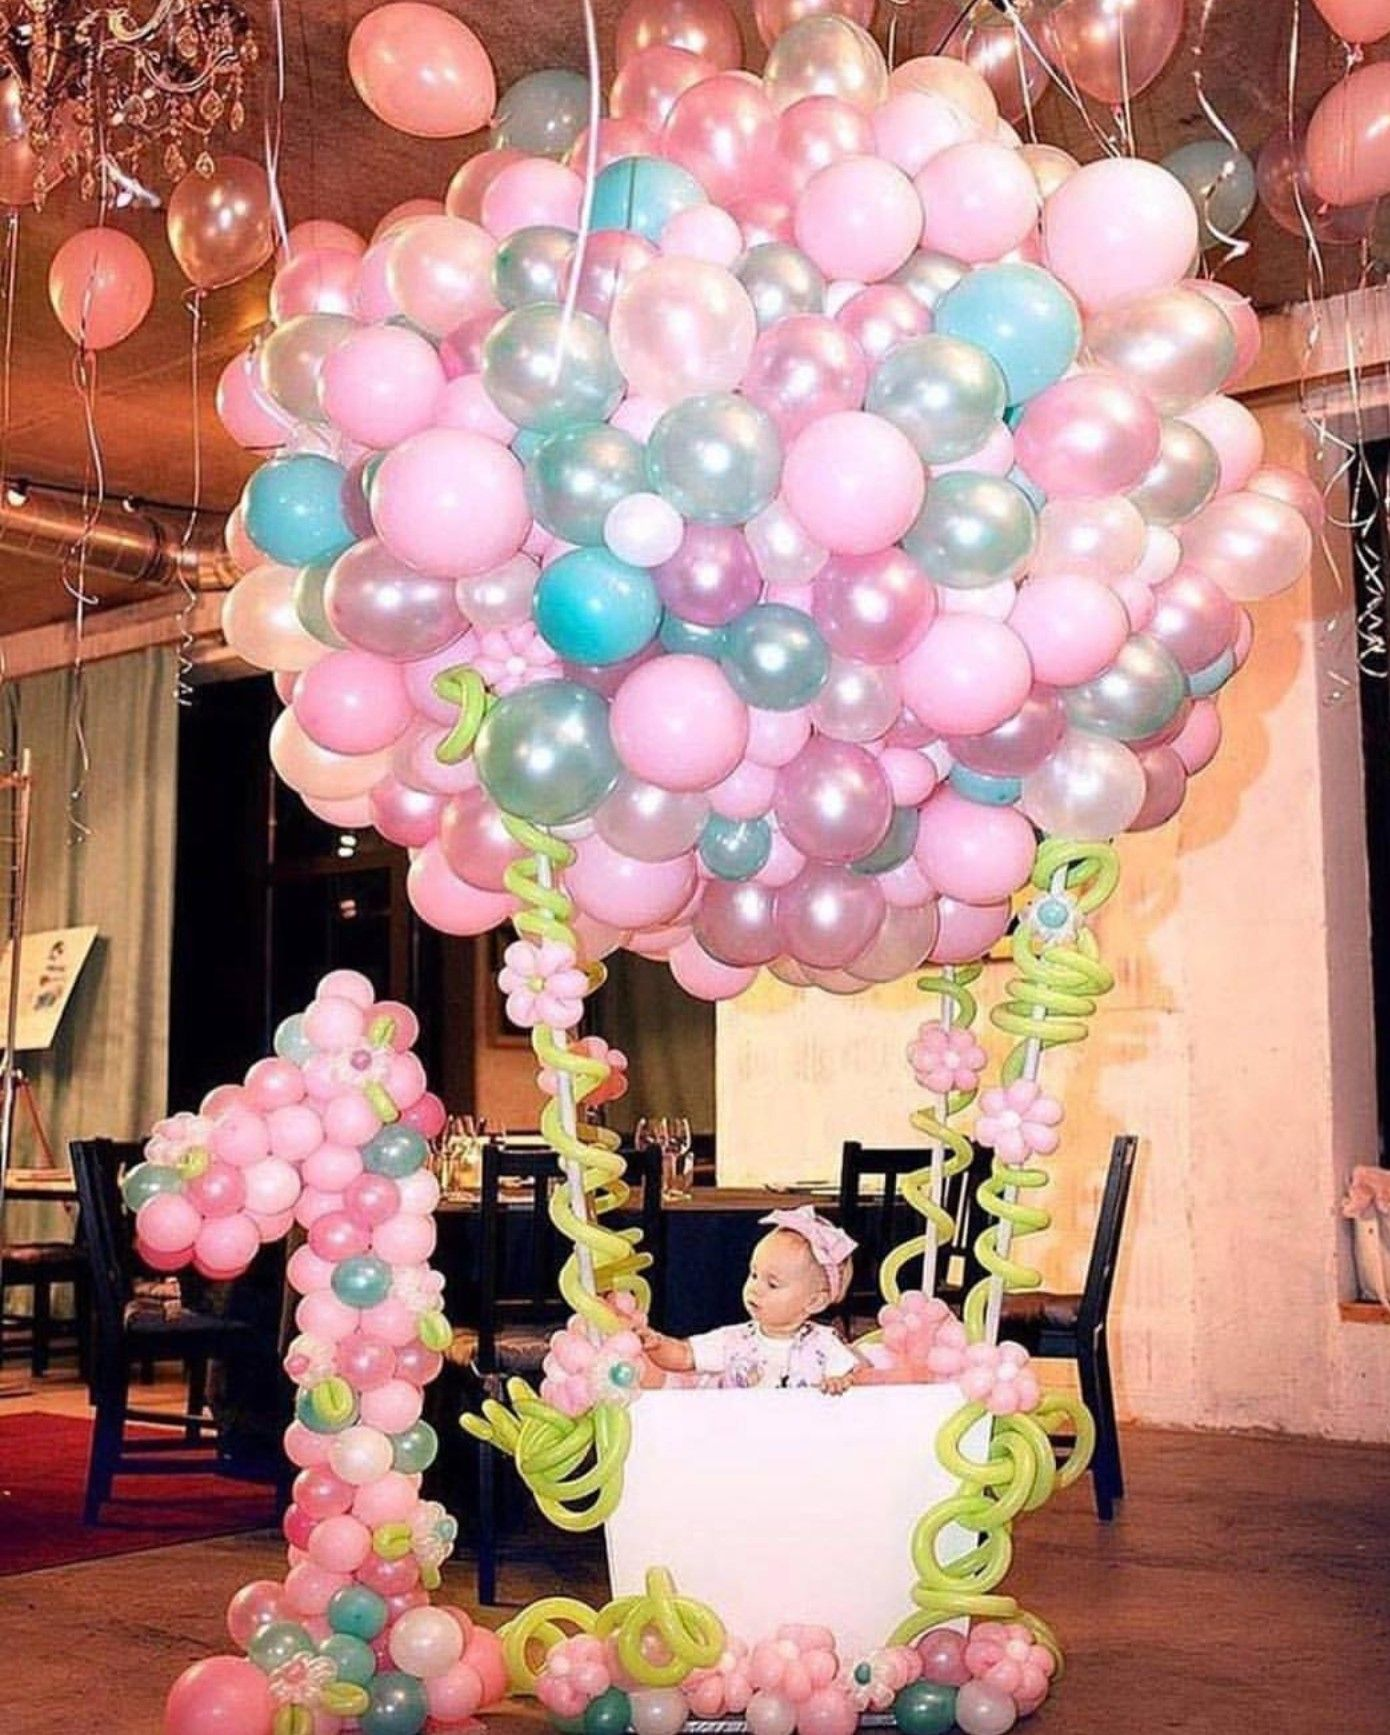 Pin de kelly fluker en Balloon Backdrops | Pinterest | Cumple, Globo ...